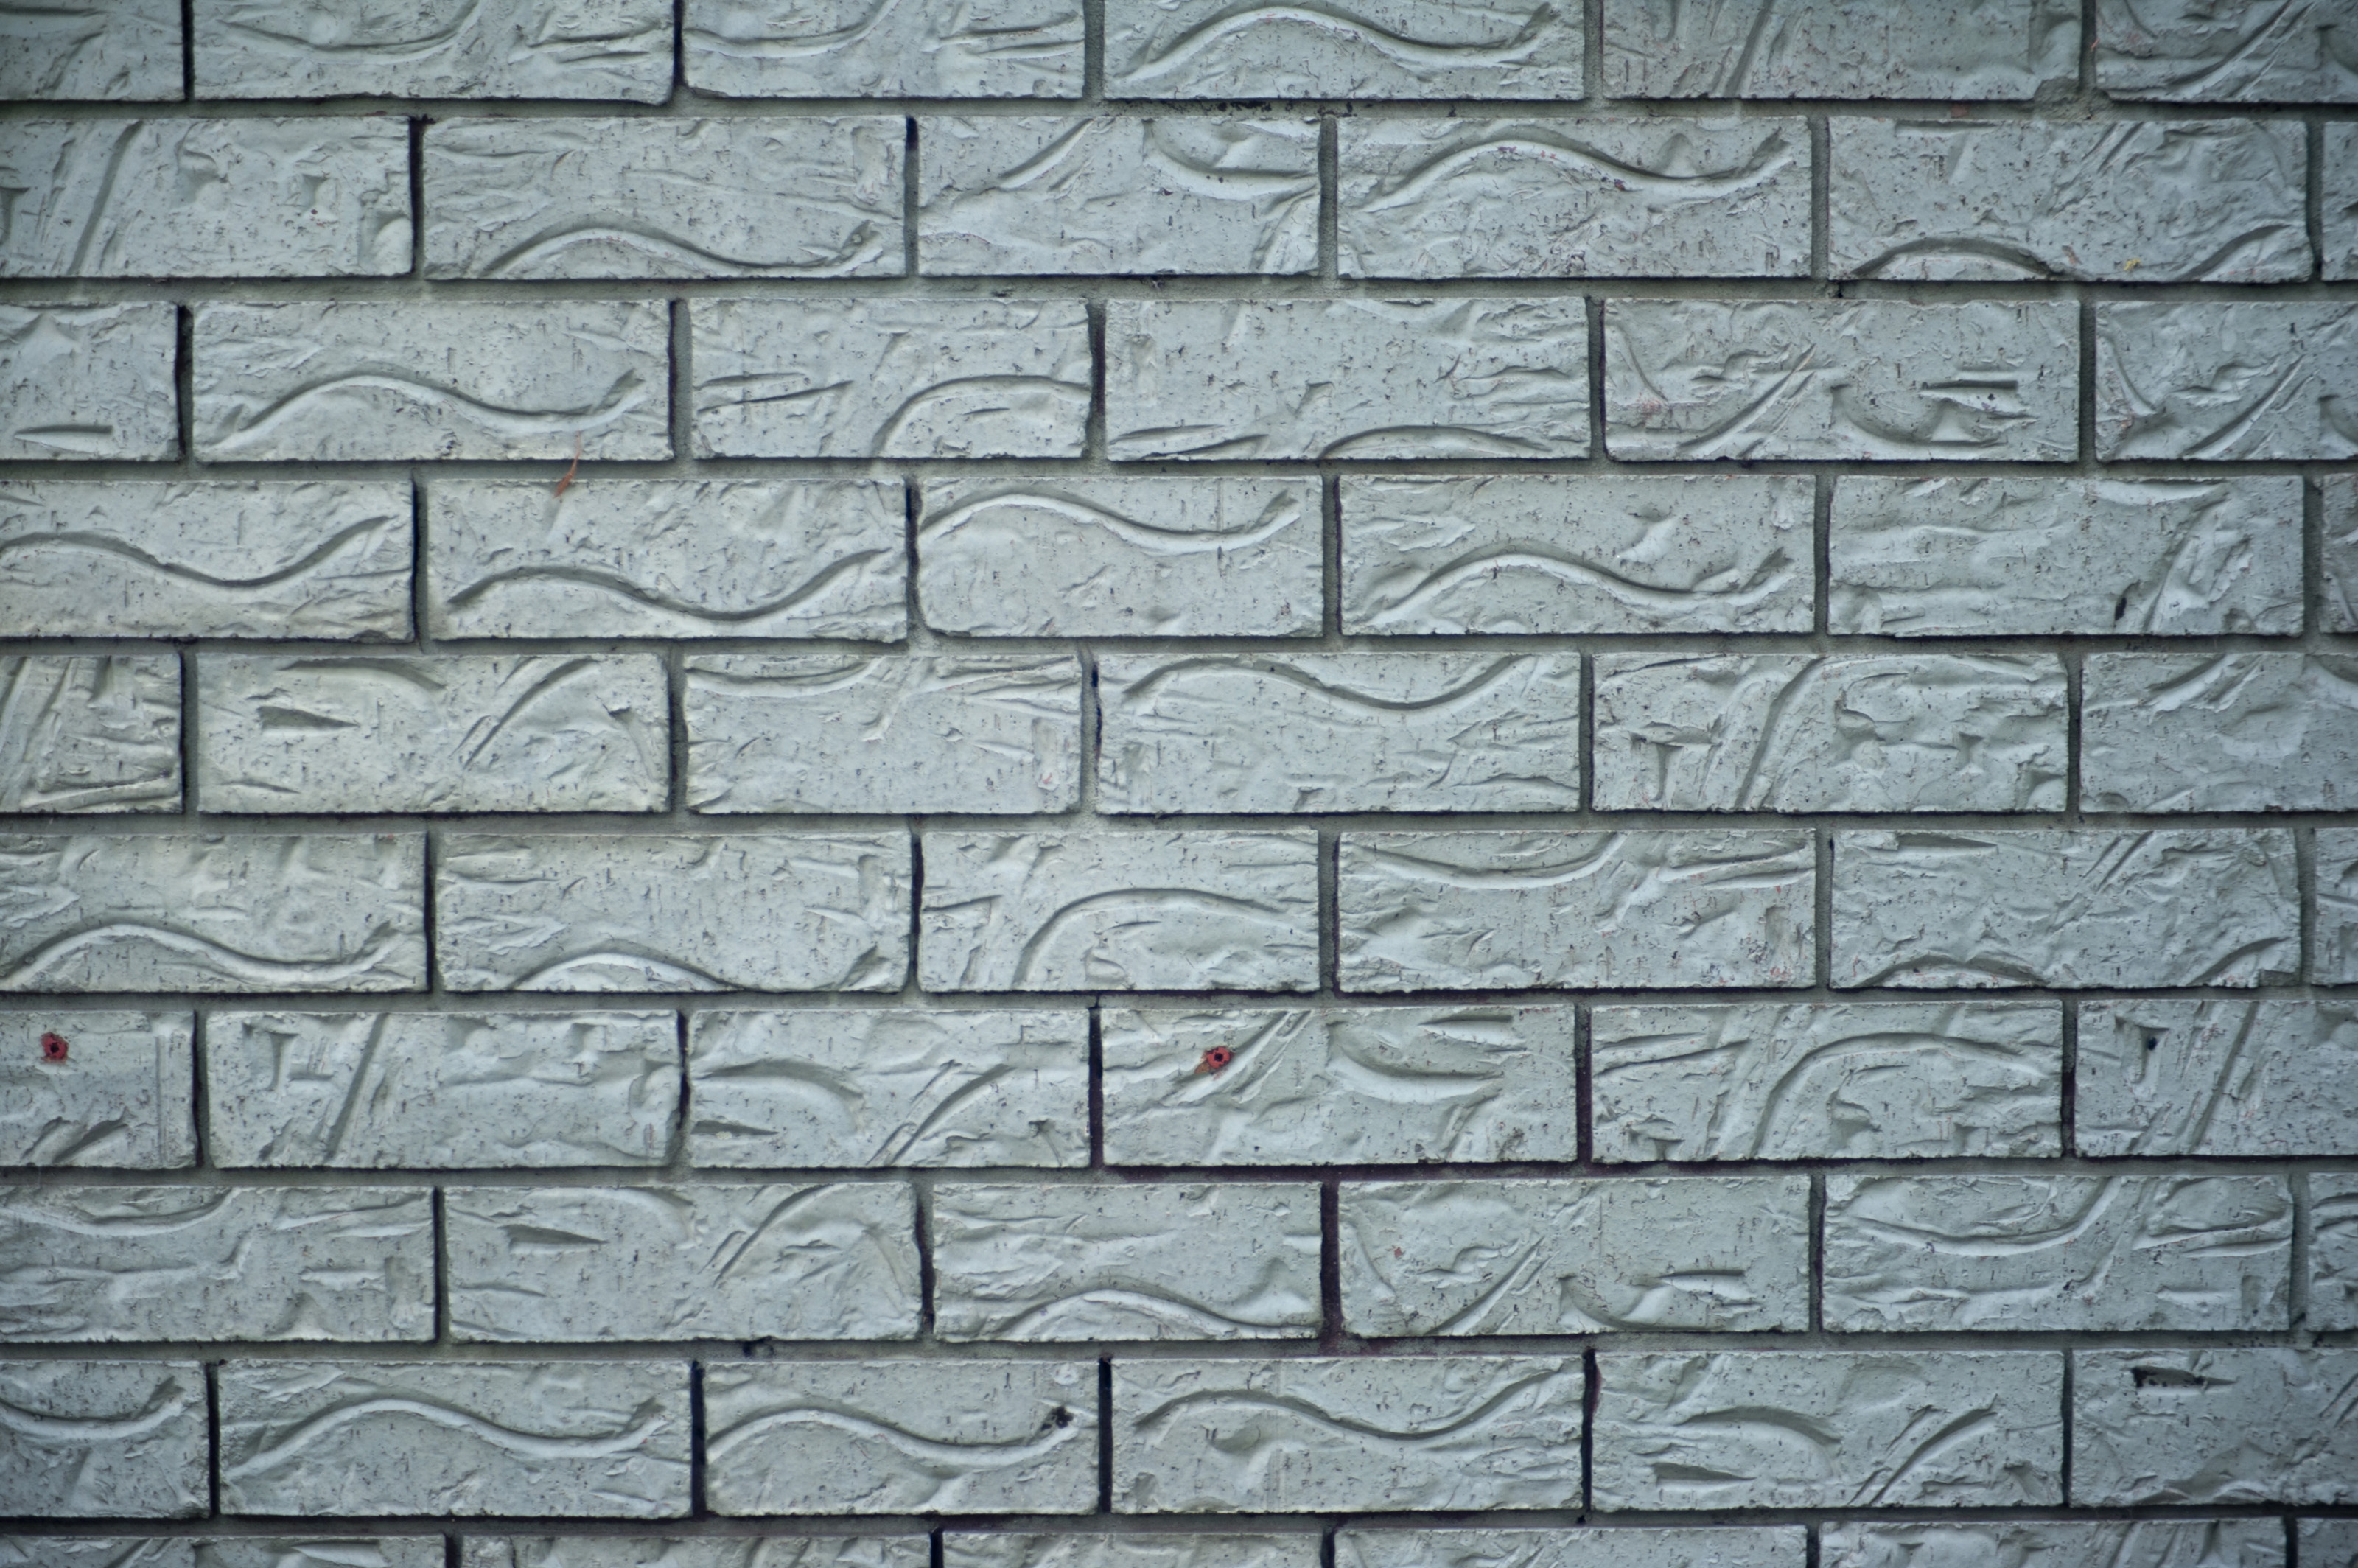 Background Texture Of Ornamental Grey Bricks With An Indented Decorative Pattern In A Full Frame